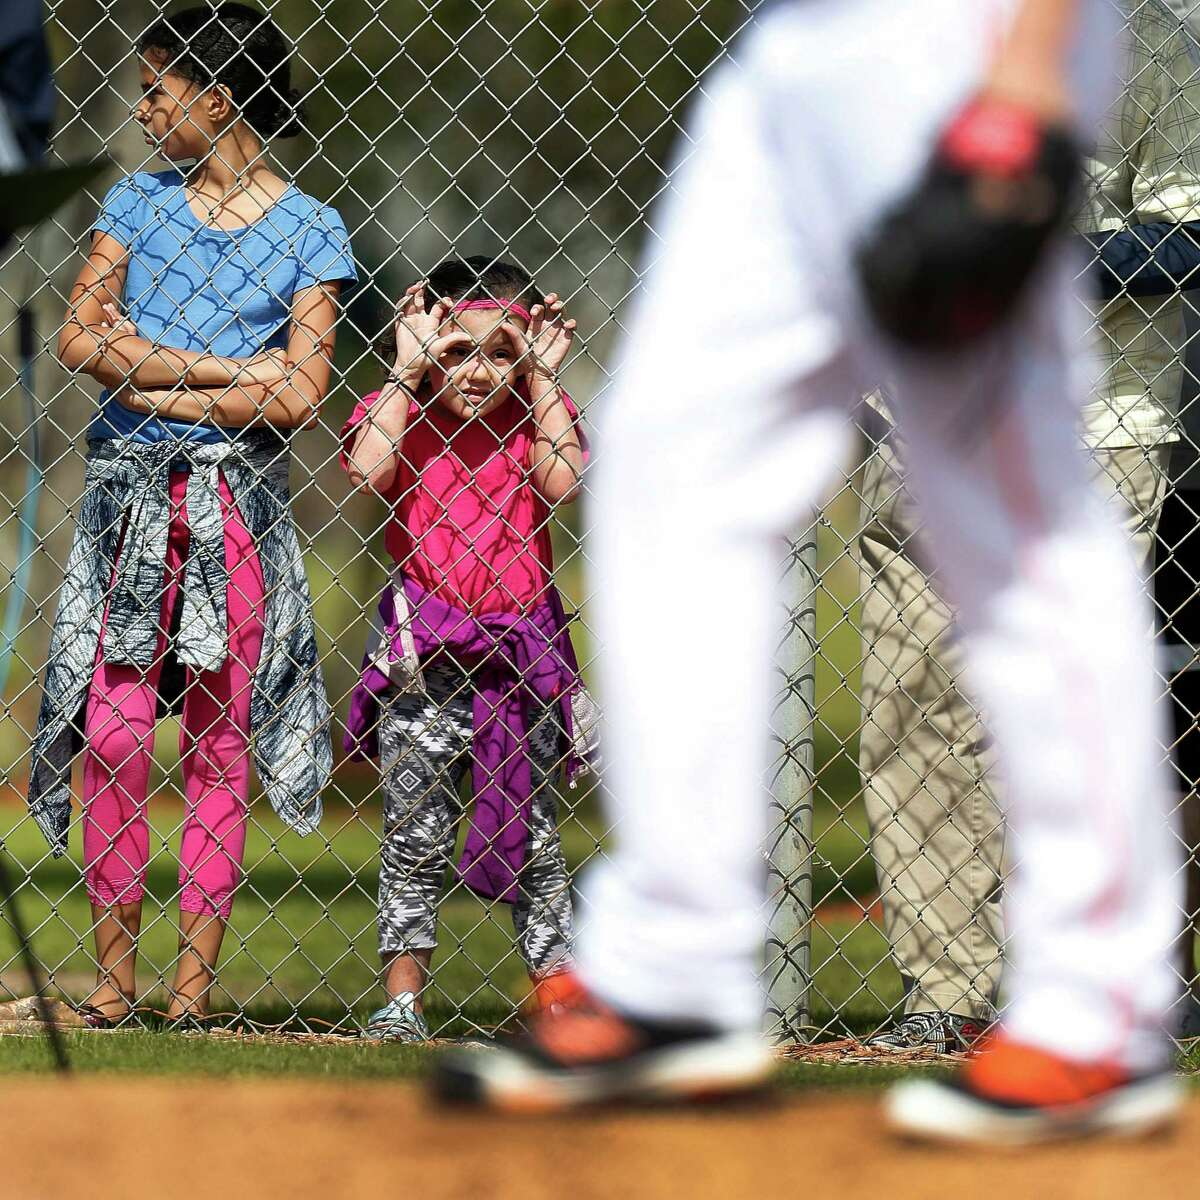 Kids watch Houston Astros pitcher Ken Giles pitch during spring training in Kissimmee, Florida, Saturday, Feb. 20, 2016.